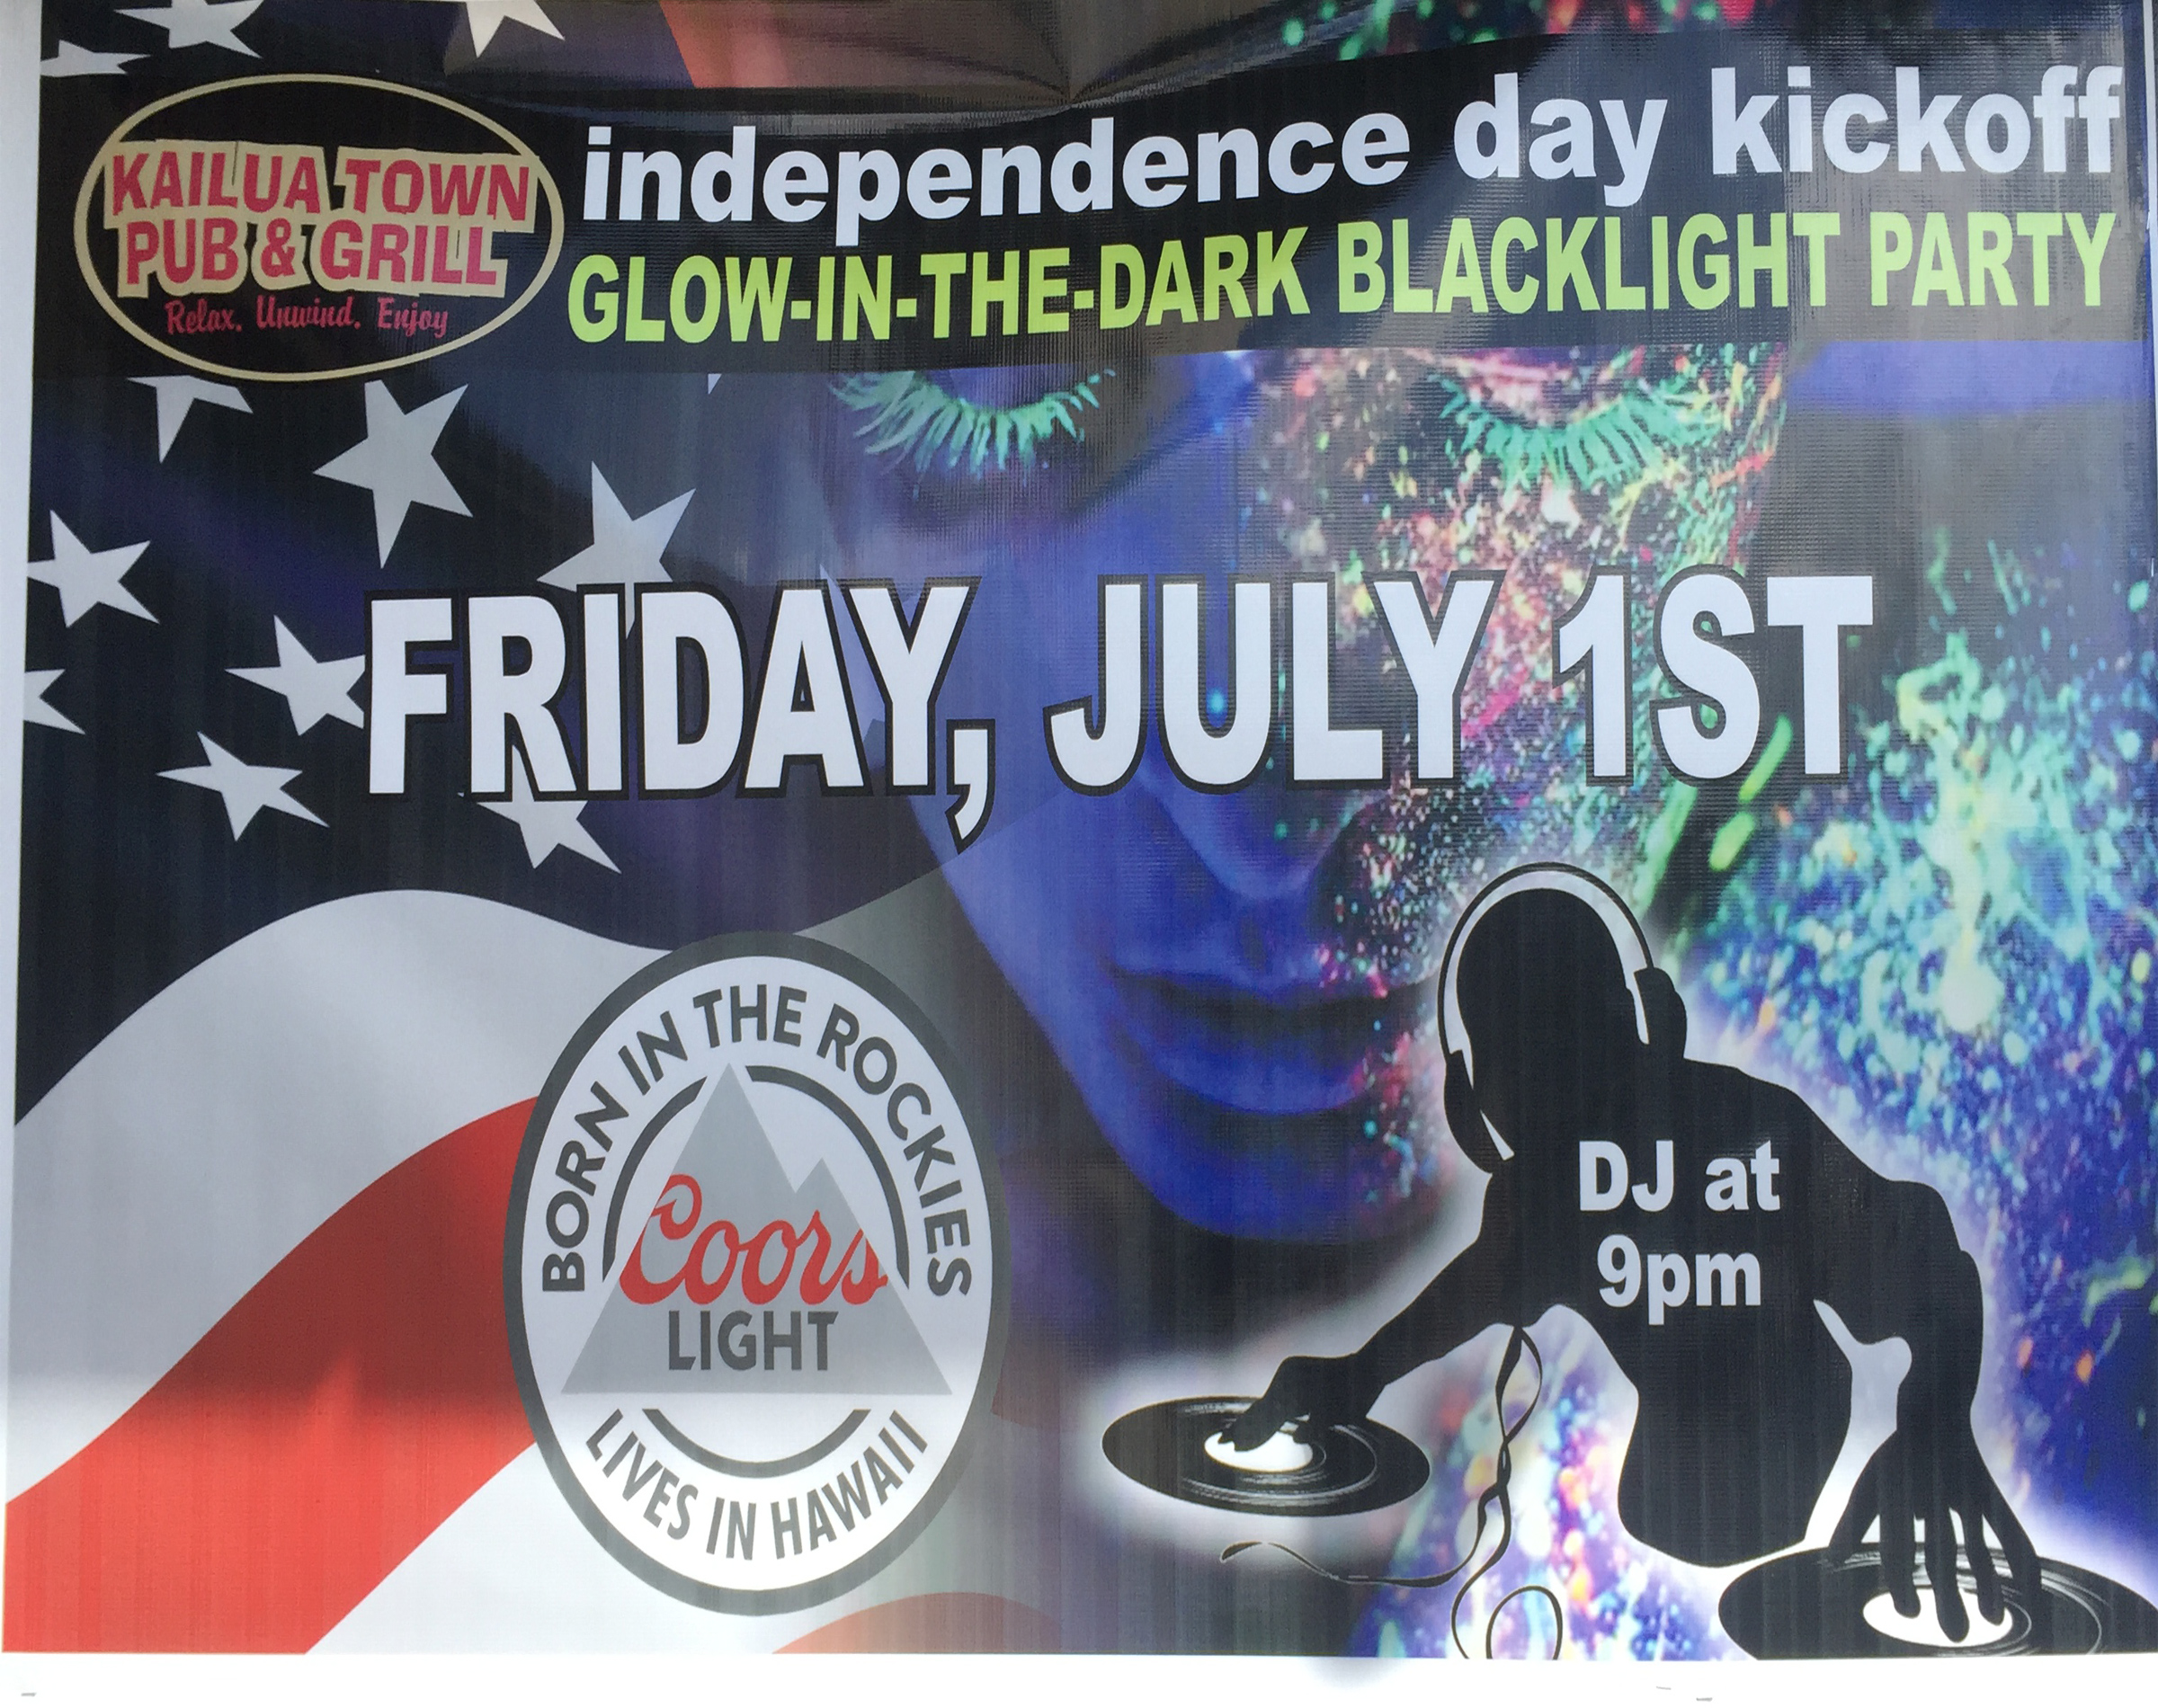 Kailua pub independence kick off party